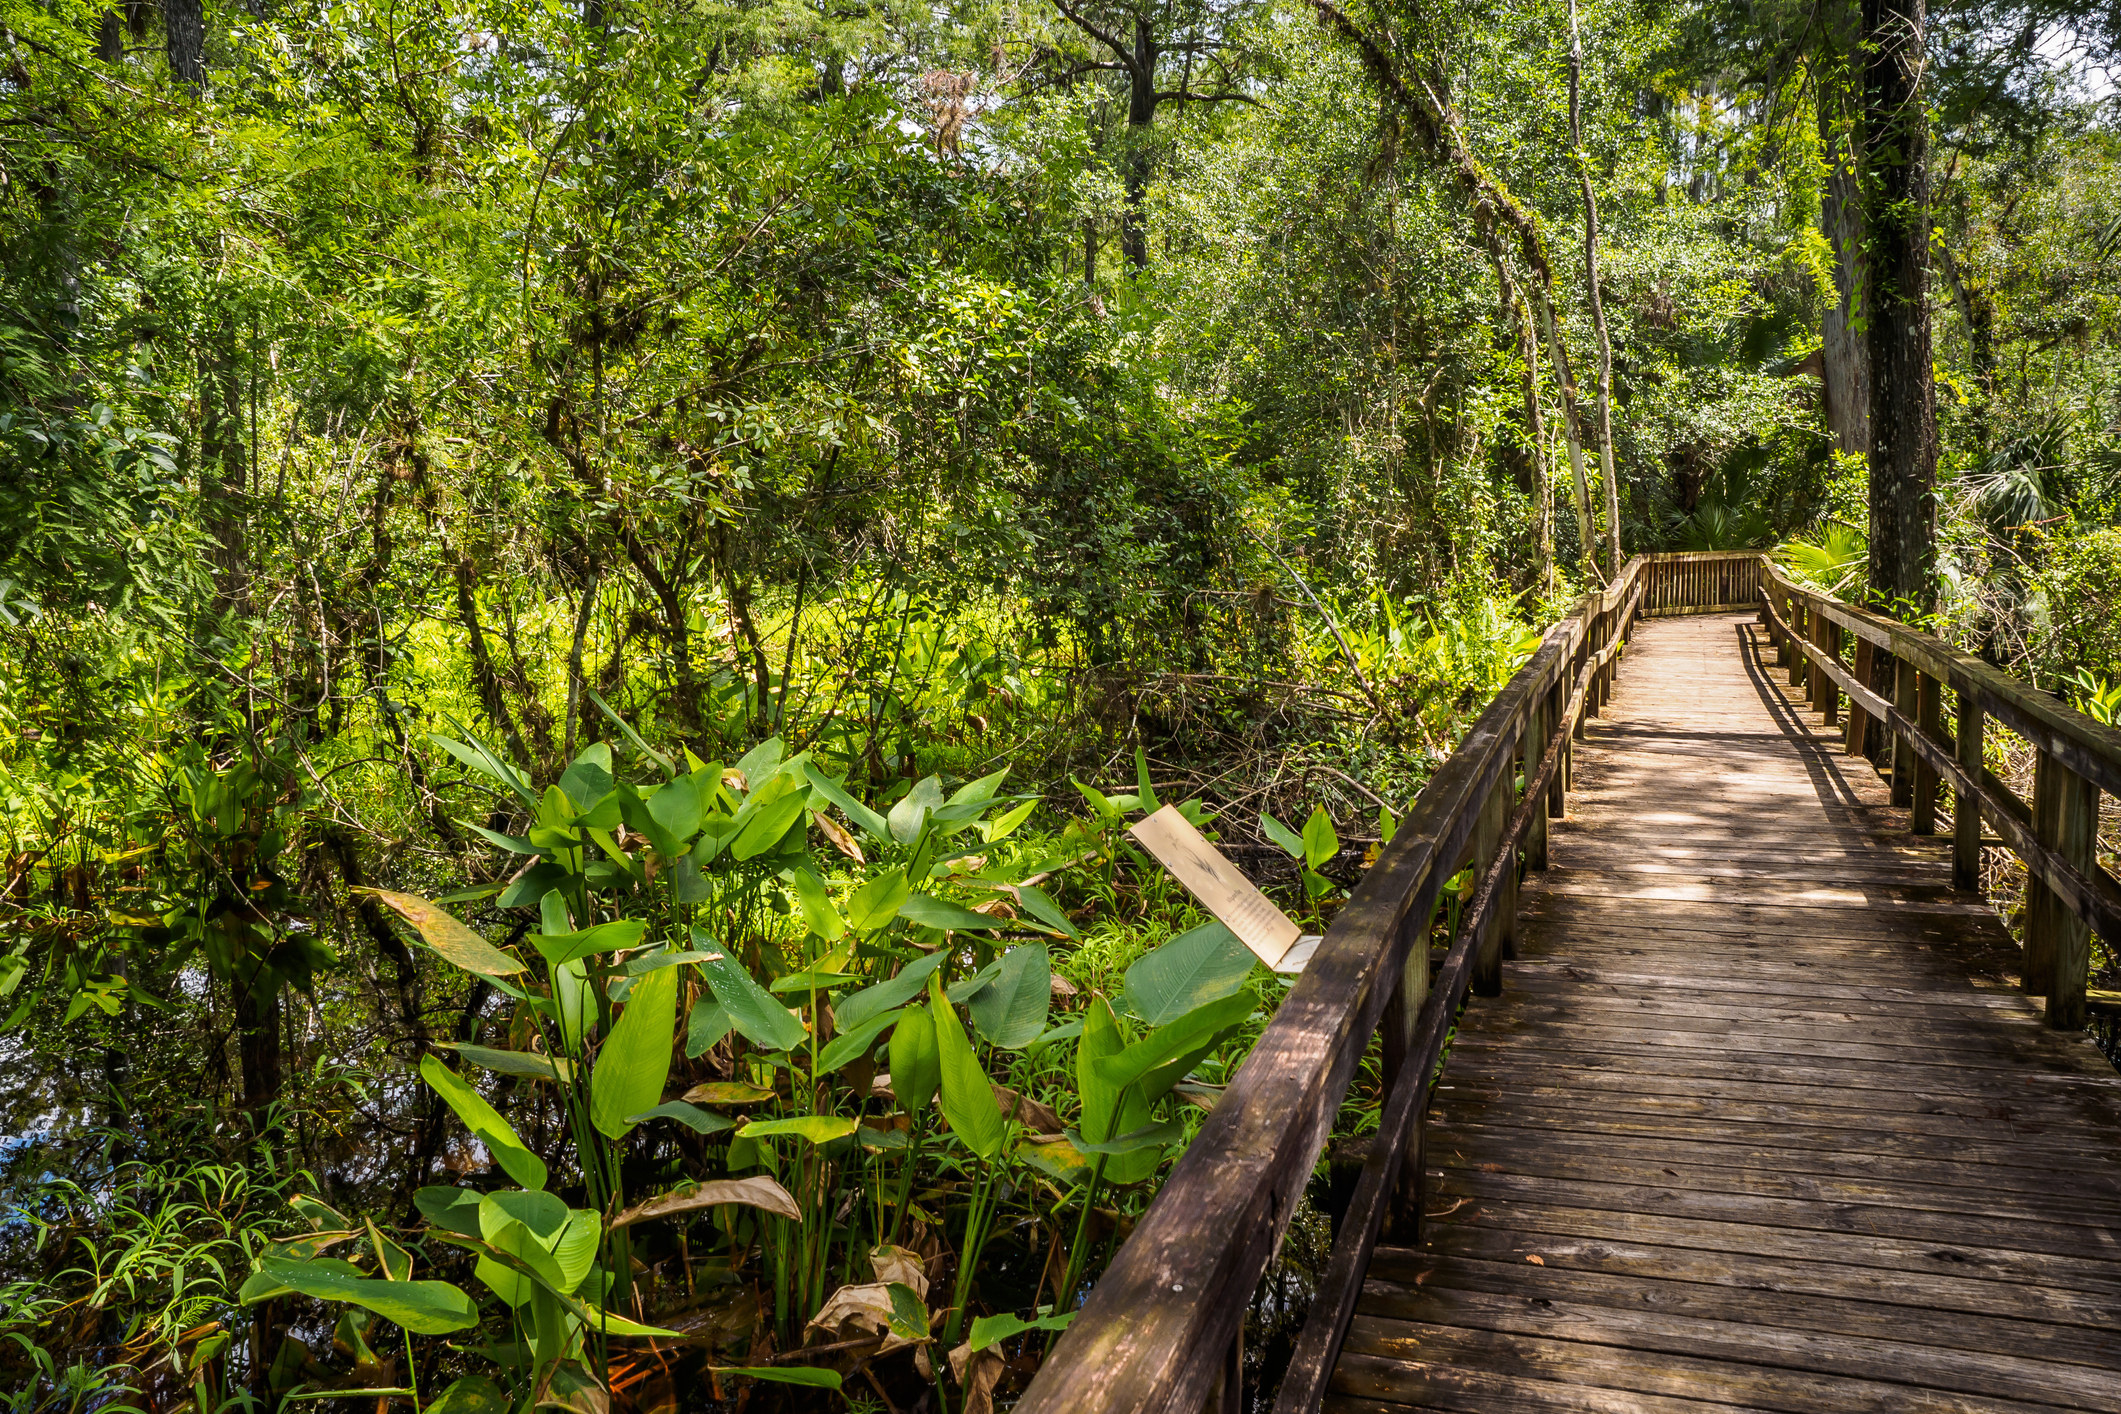 A wooden boardwalk winds through lush vegetation